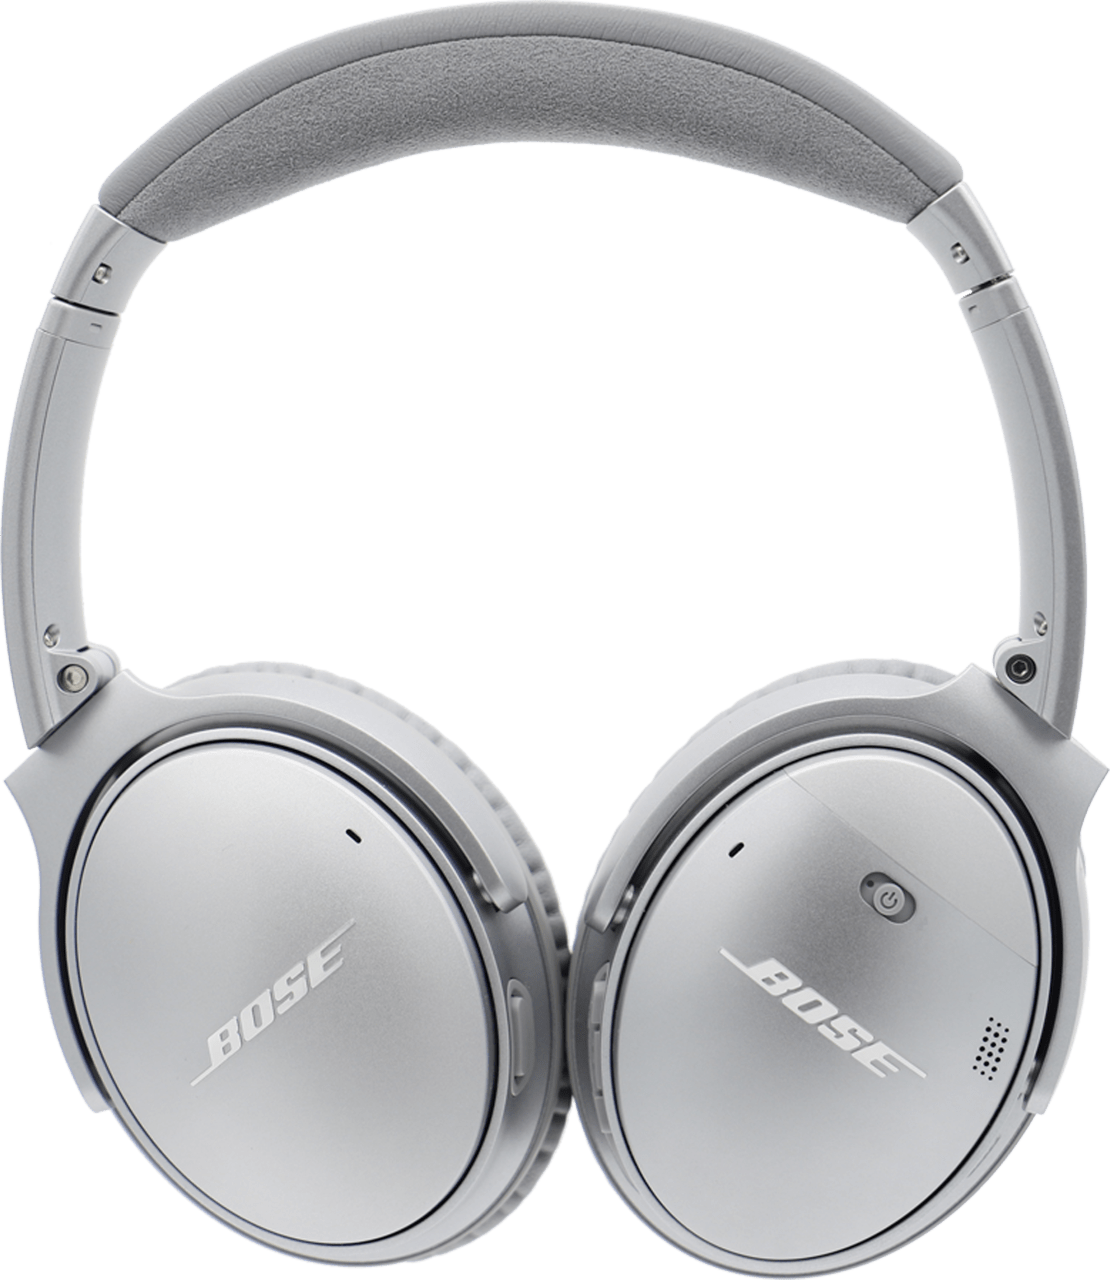 Silver Bose Quietcomfort 35 II Noise-cancelling Over-ear Bluetooth Headphones.3